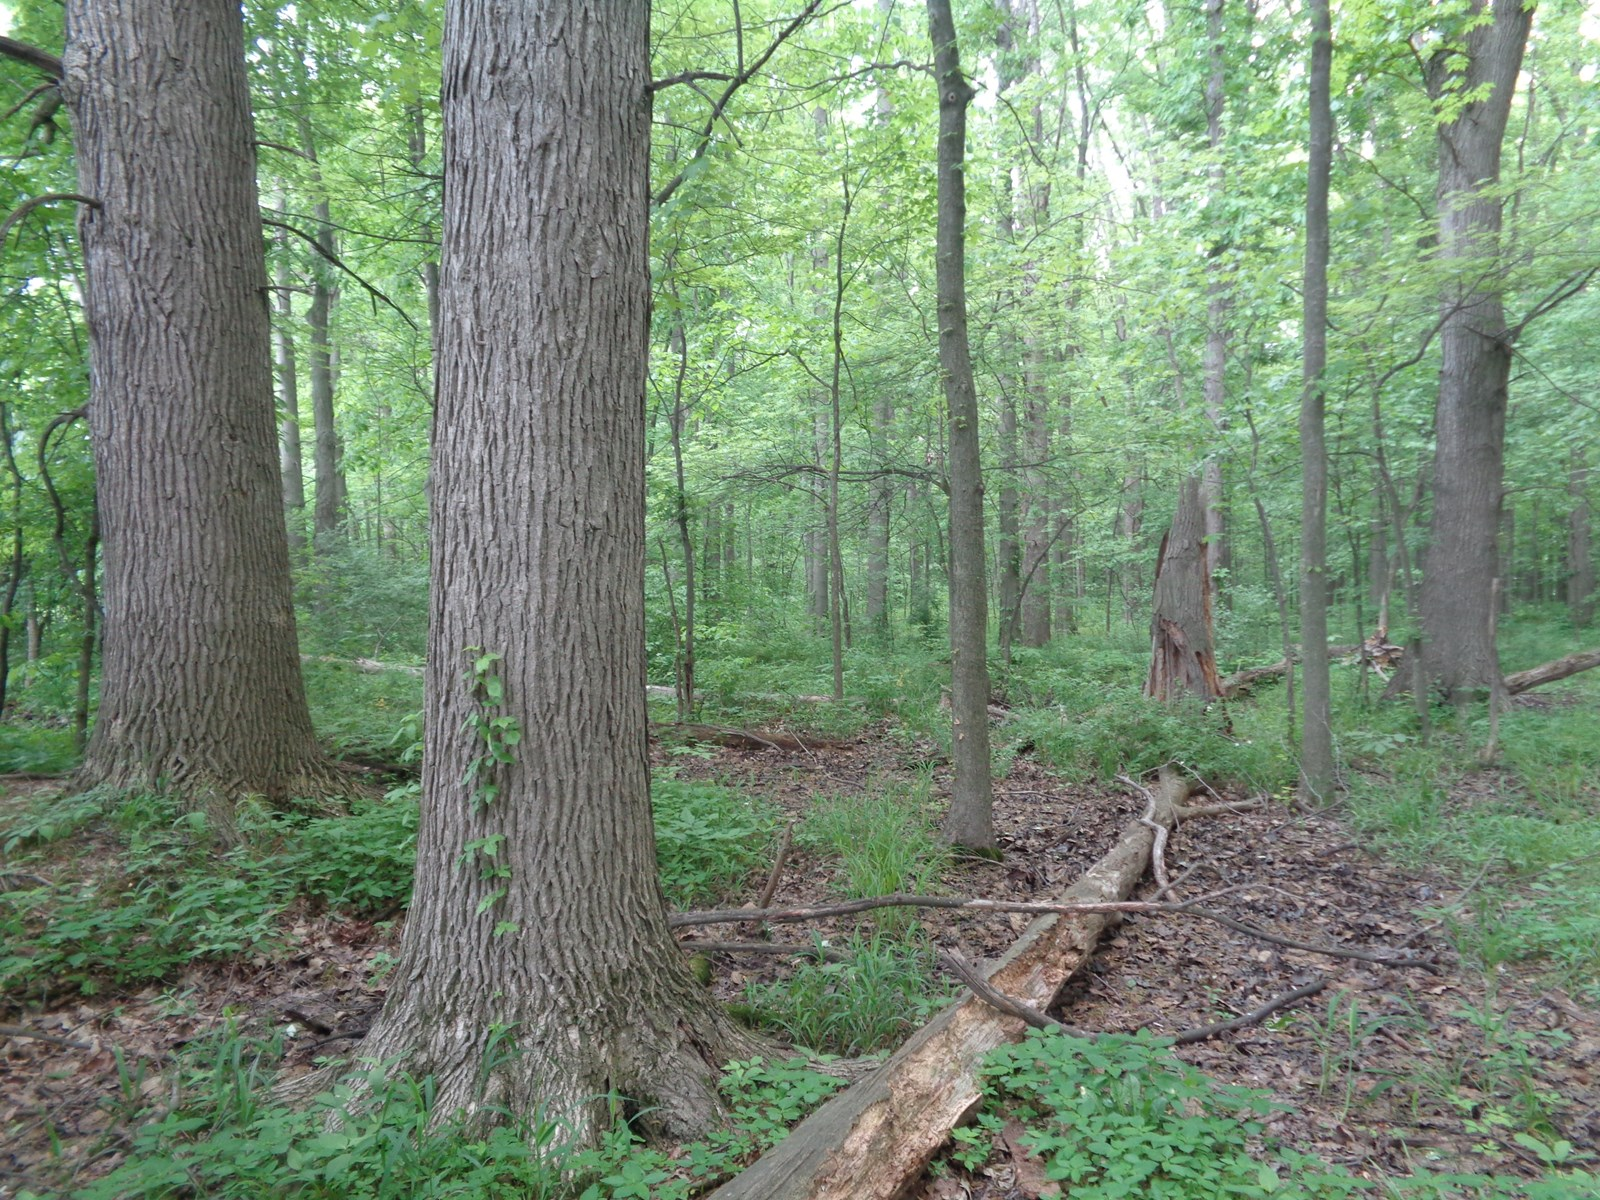 Real Estate Auction   Timber   Tillable and Hunting Ground